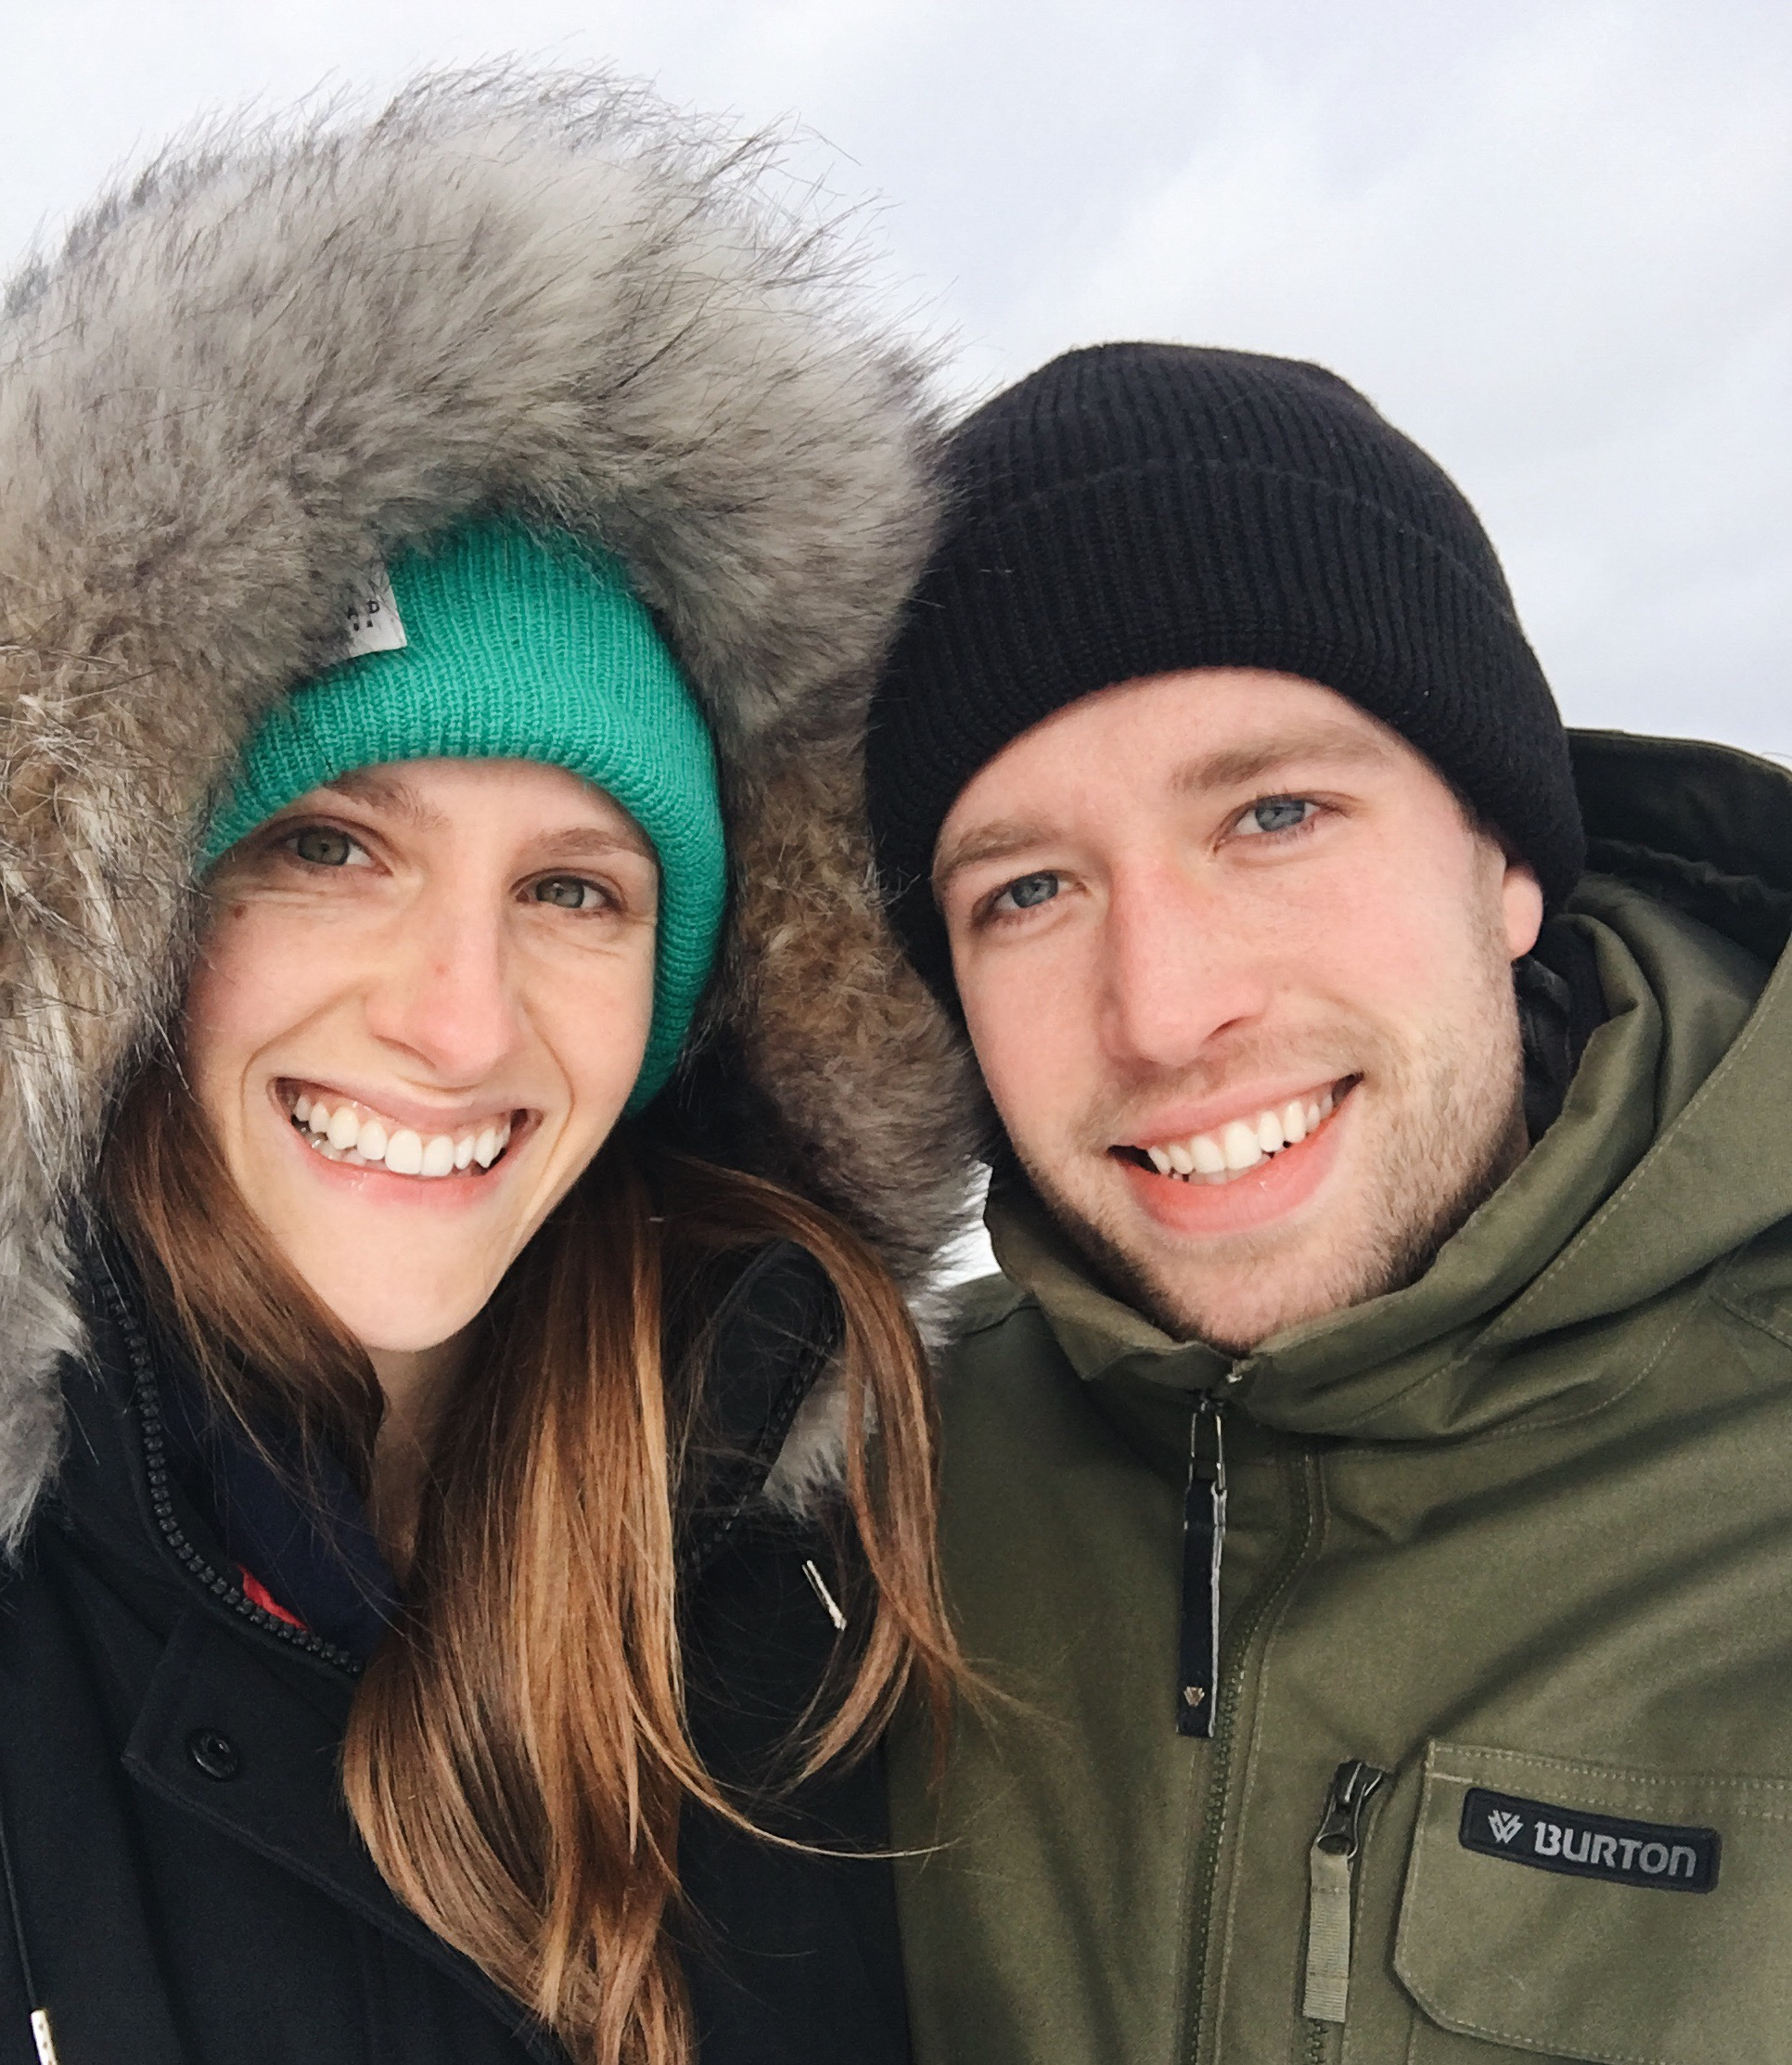 About - Who are Jordan and Beth? Find out about their story and what inspires them!